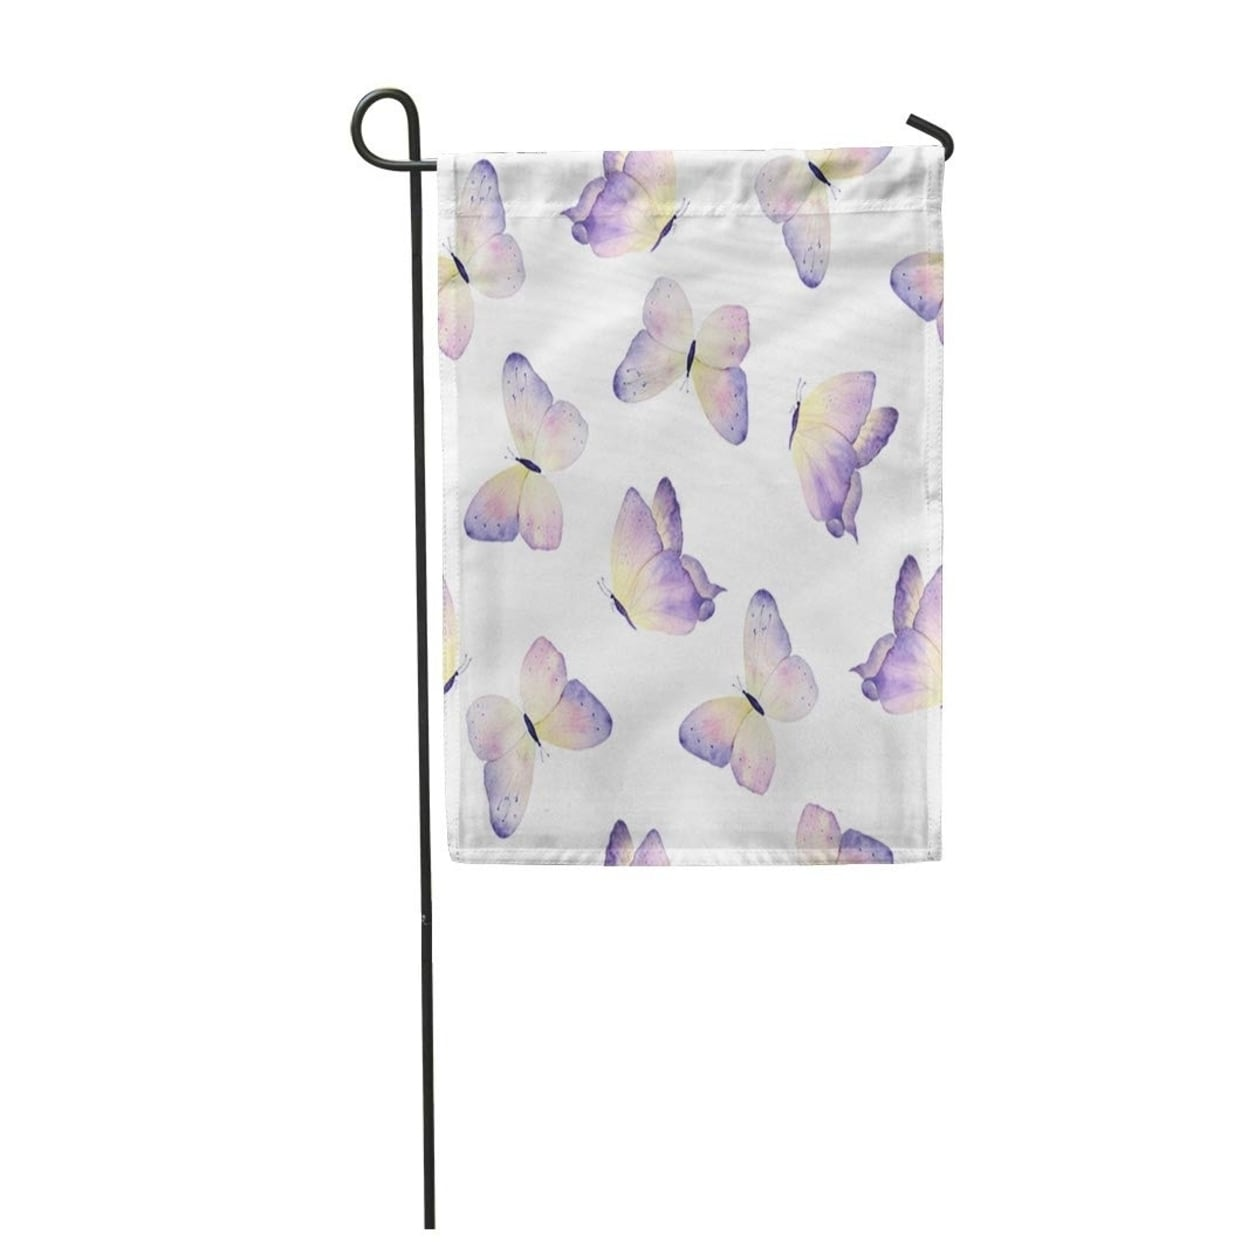 Blue Butterfly Watercolor Butterflies Colorful Pattern Animation Artistic Garden Flag Decorative Flag House Banner 12x18 On Sale Overstock 31337469